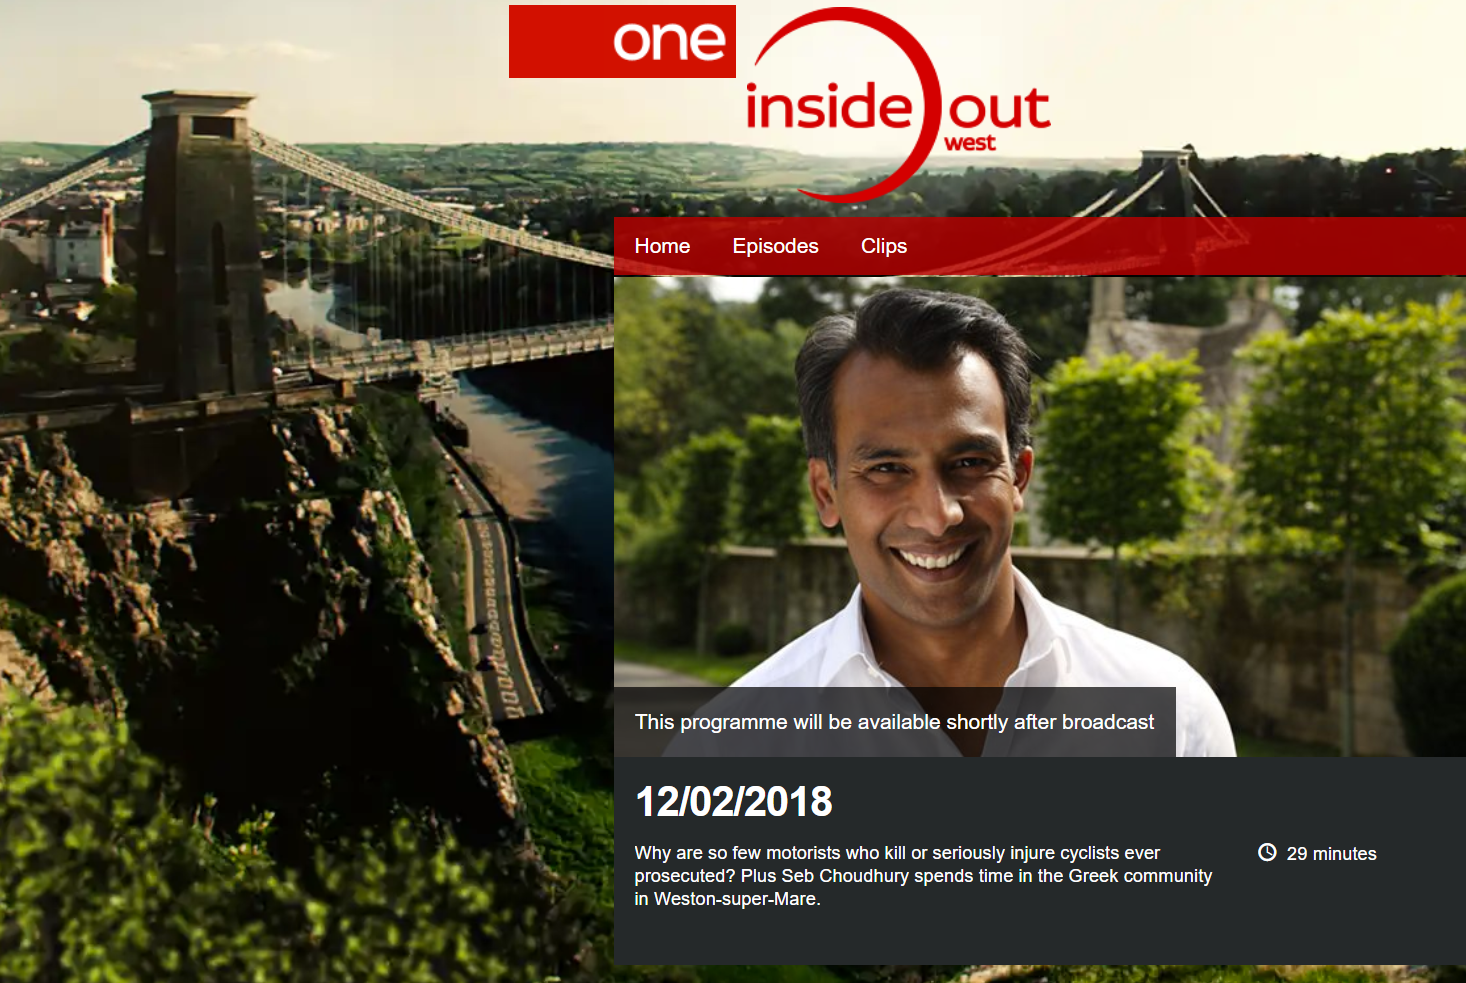 BBC: Why are so few motorists who injure cyclists ever prosecuted?